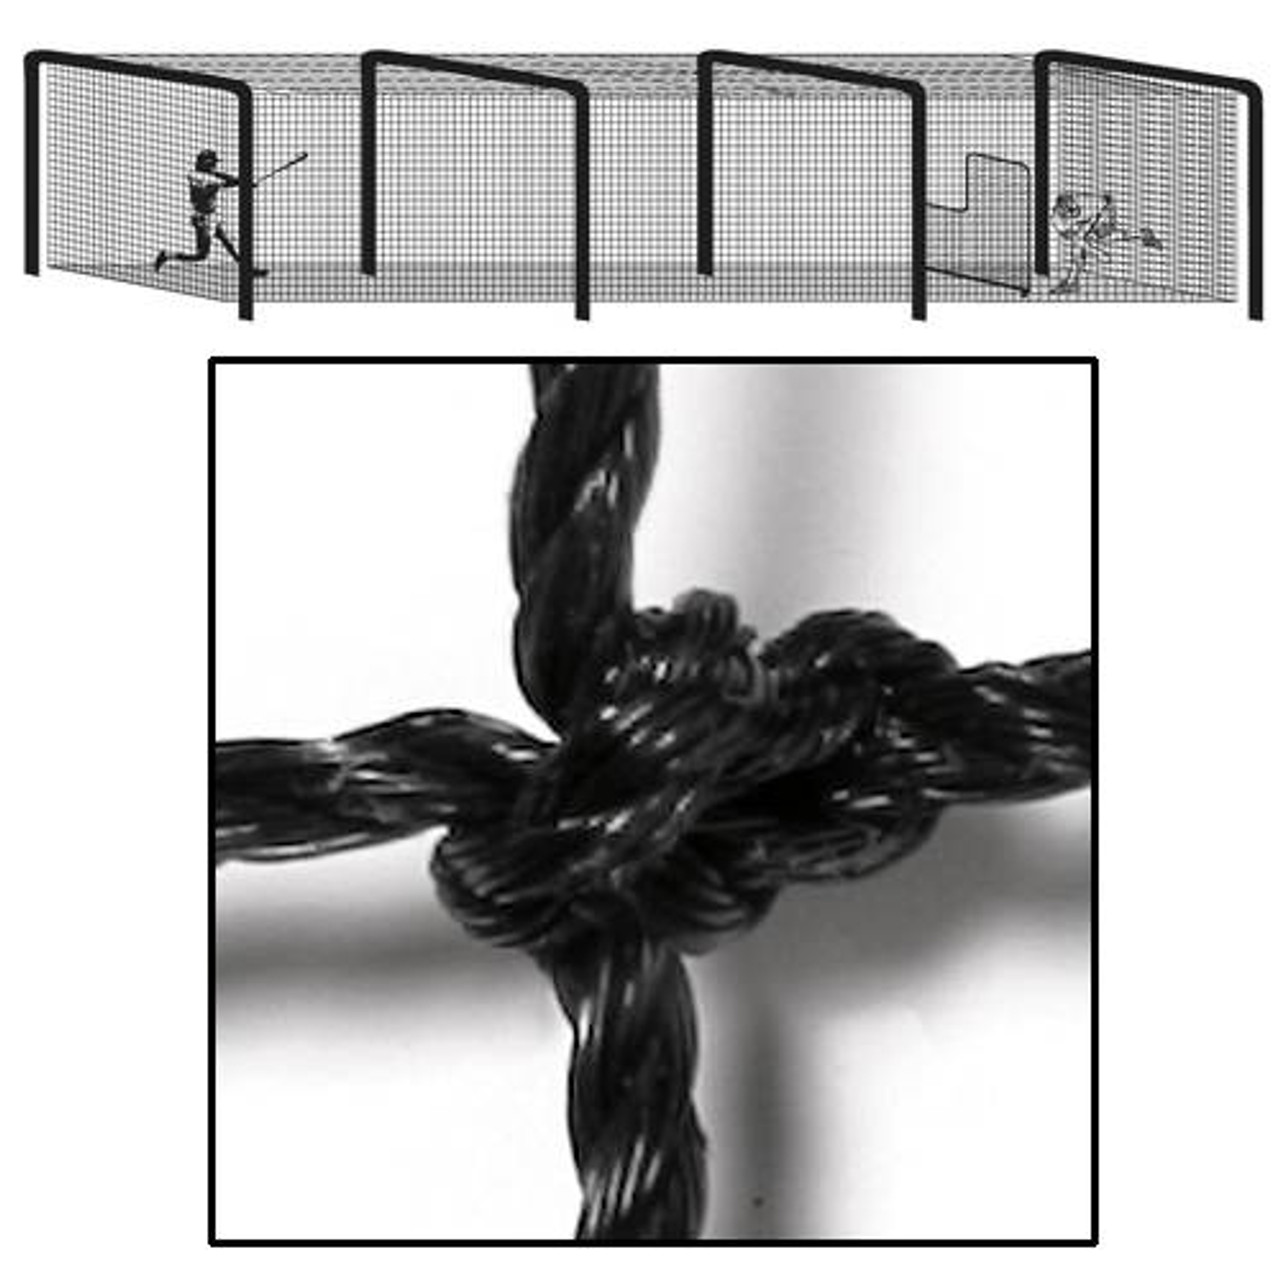 Baseball Pro Batting Tunnel Net 55 x 12 x 12